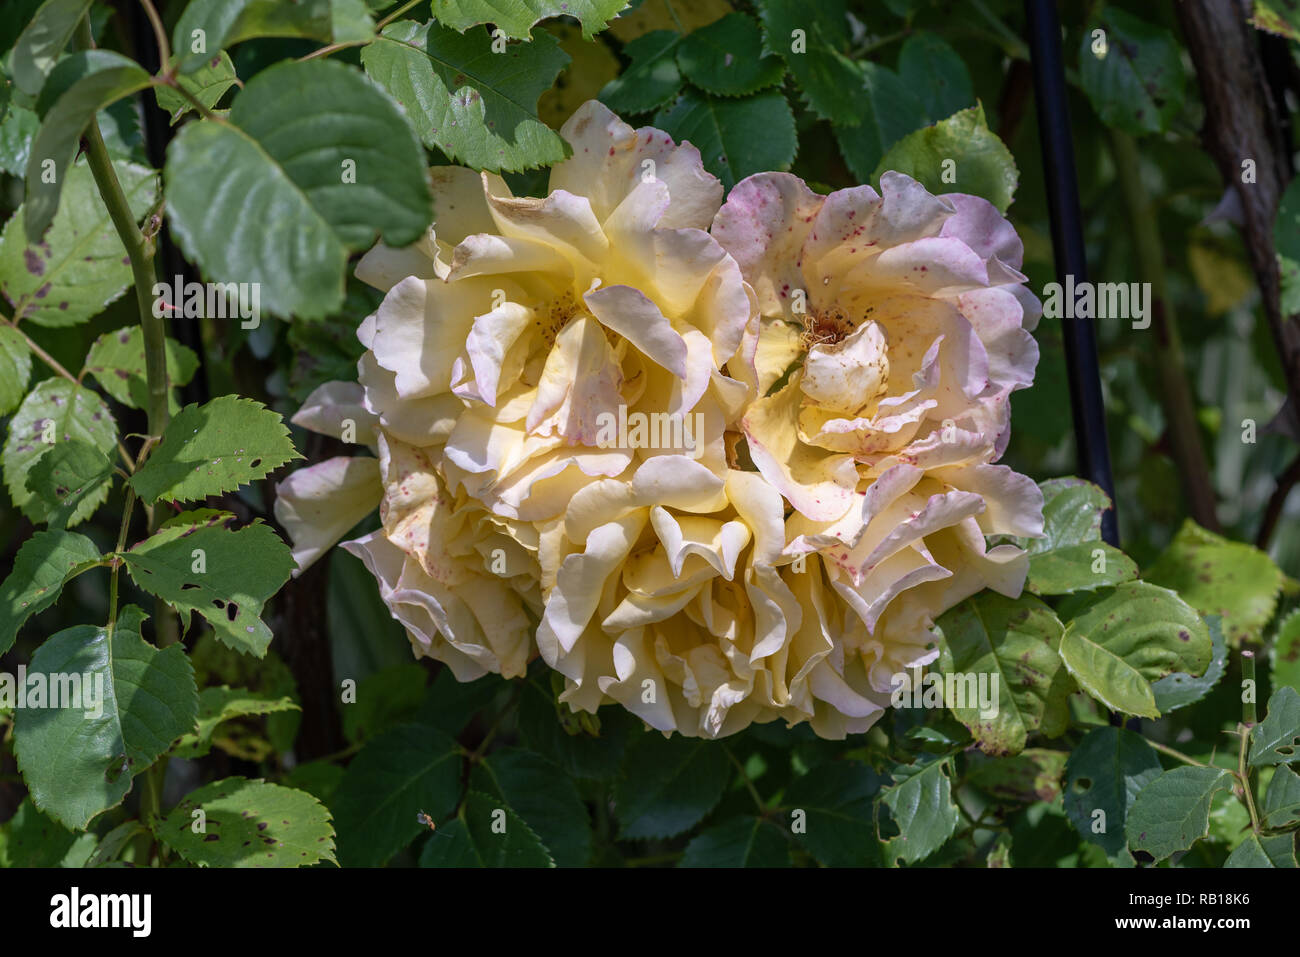 Color outdoor nature flower image of a fading lush bunch white pink rose blossoms on natural blurred green background,symbolic age,decay,fade,wrinkled - Stock Image